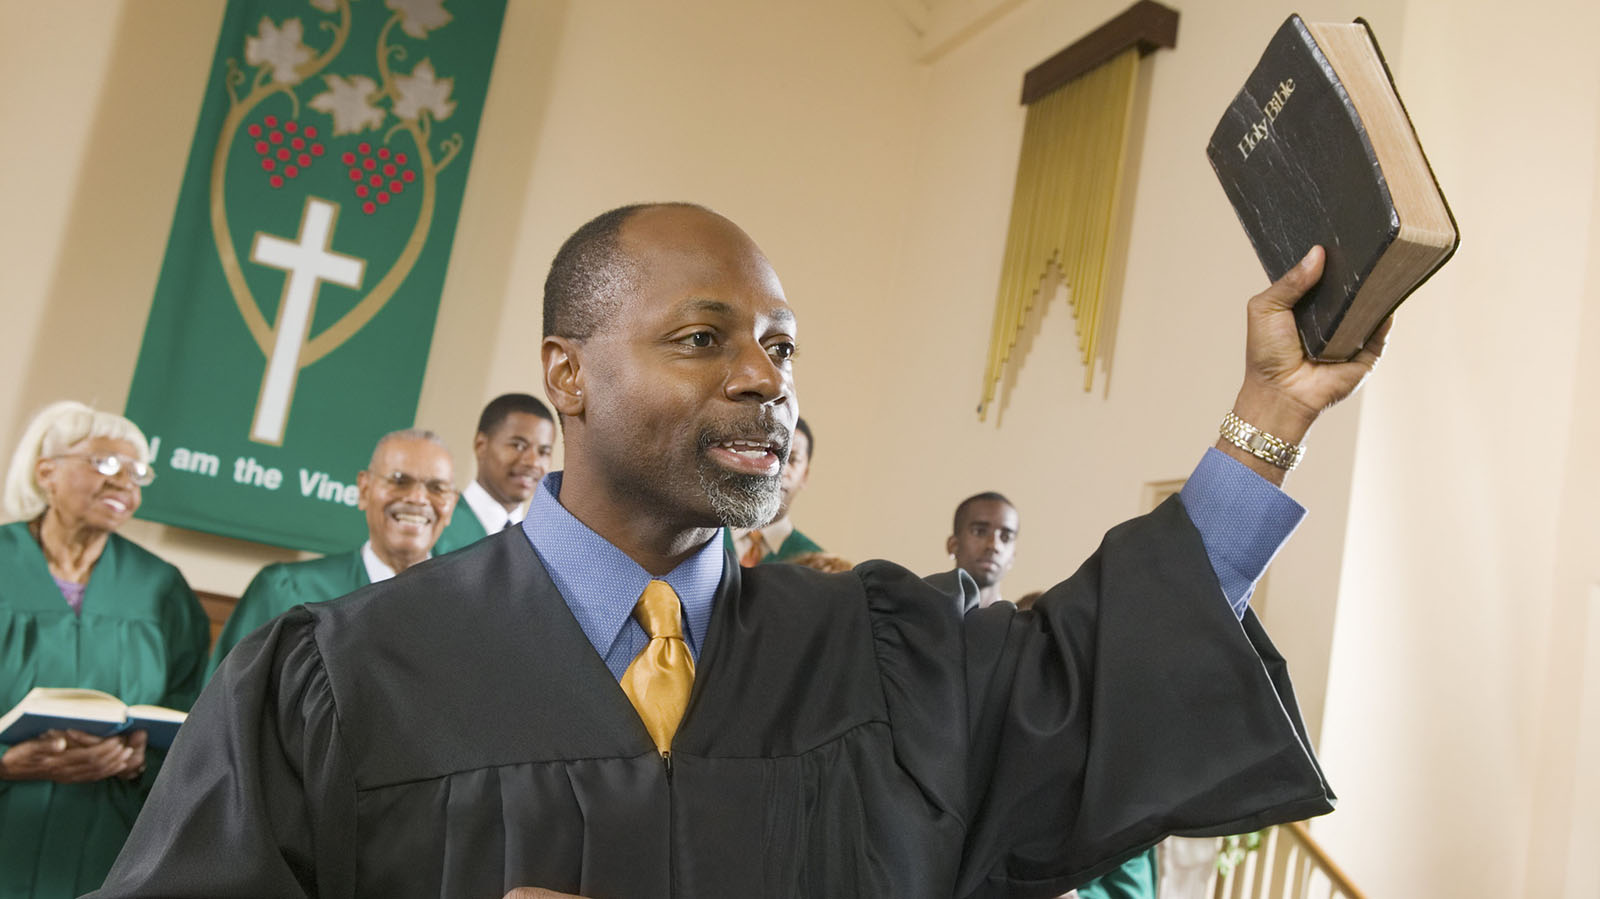 A preacher preaches the gospel while holding a bible. Members of the chorus read and smile in the background.